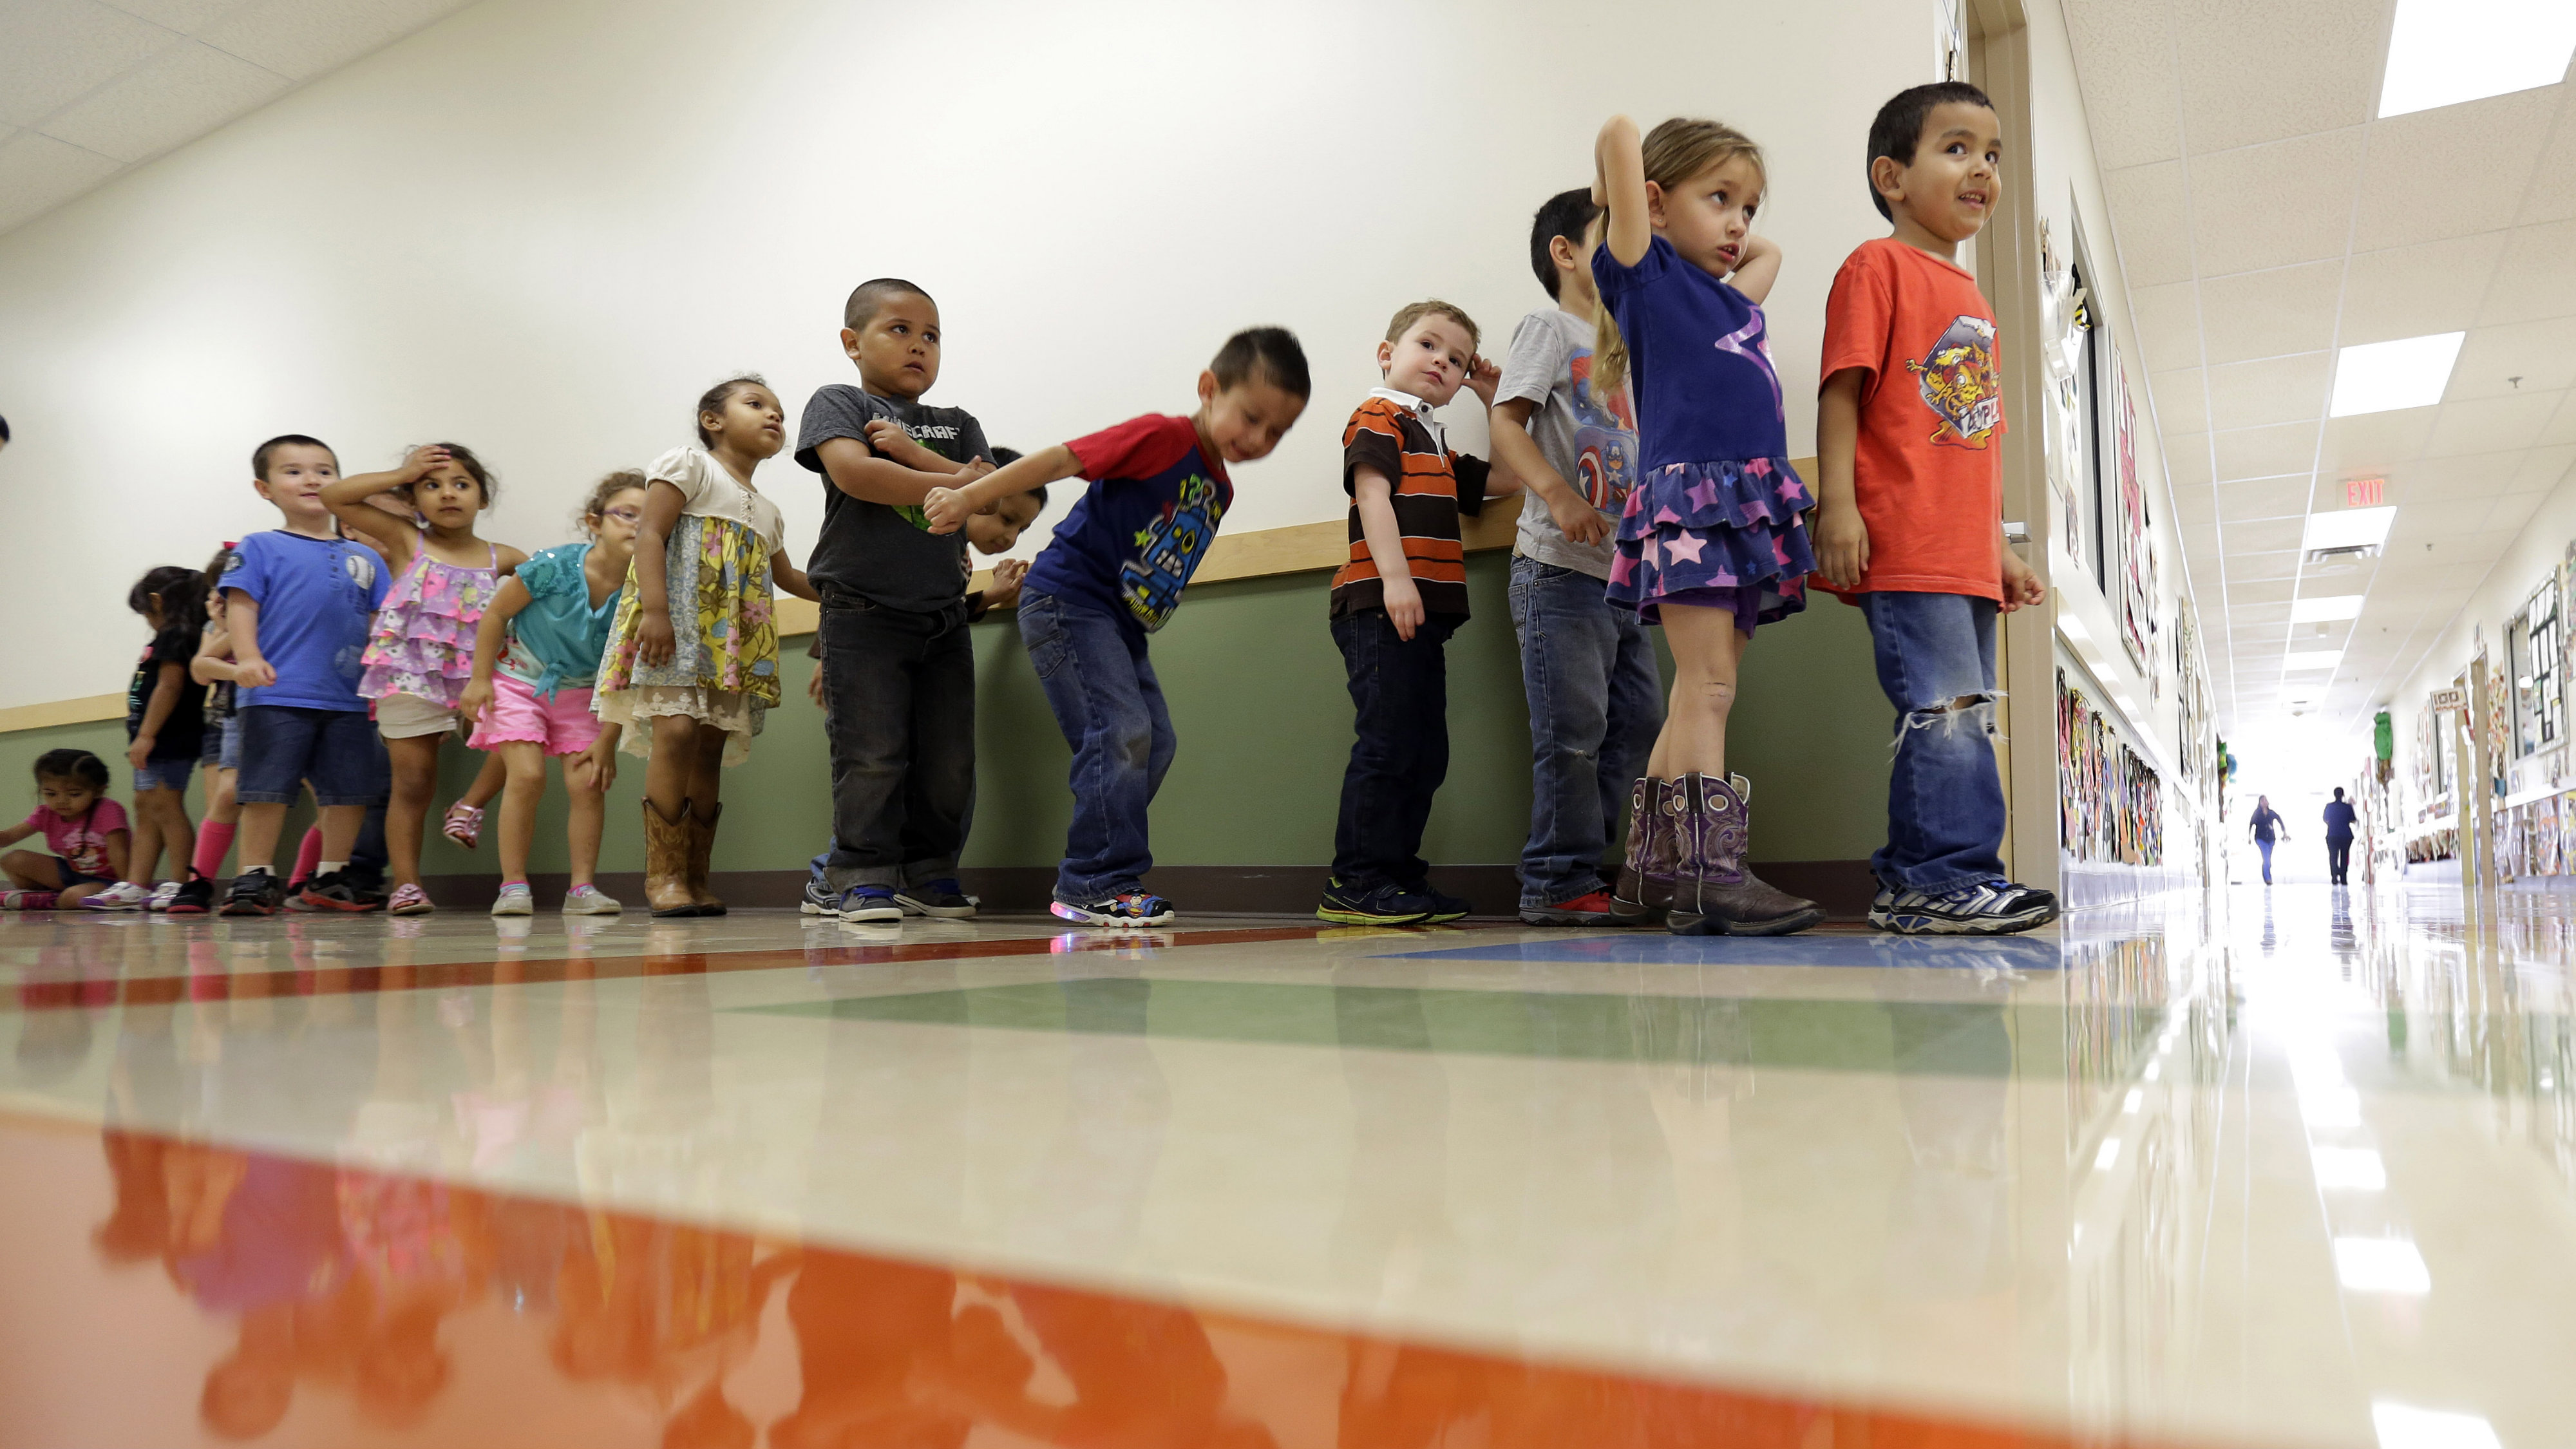 Pre-K students line up outside a classroom at the South Education Center, Wednesday, April 2, 2014, in San Antonio.